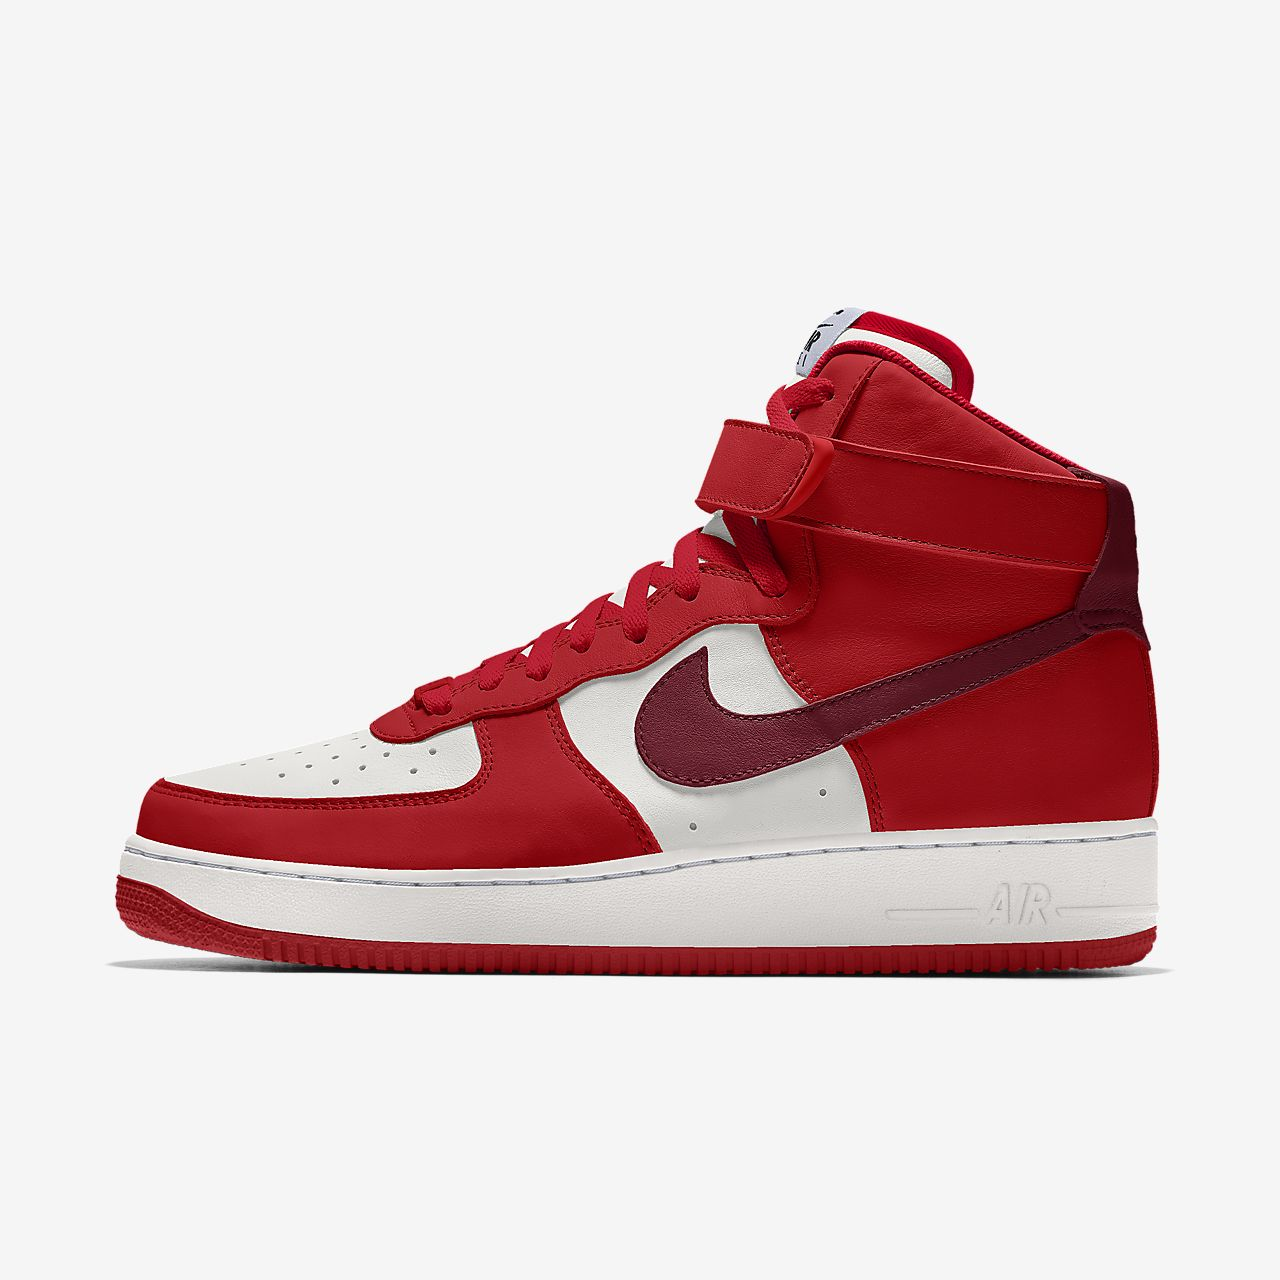 Chaussure personnalisable Nike Air Force 1 High By You pour Femme